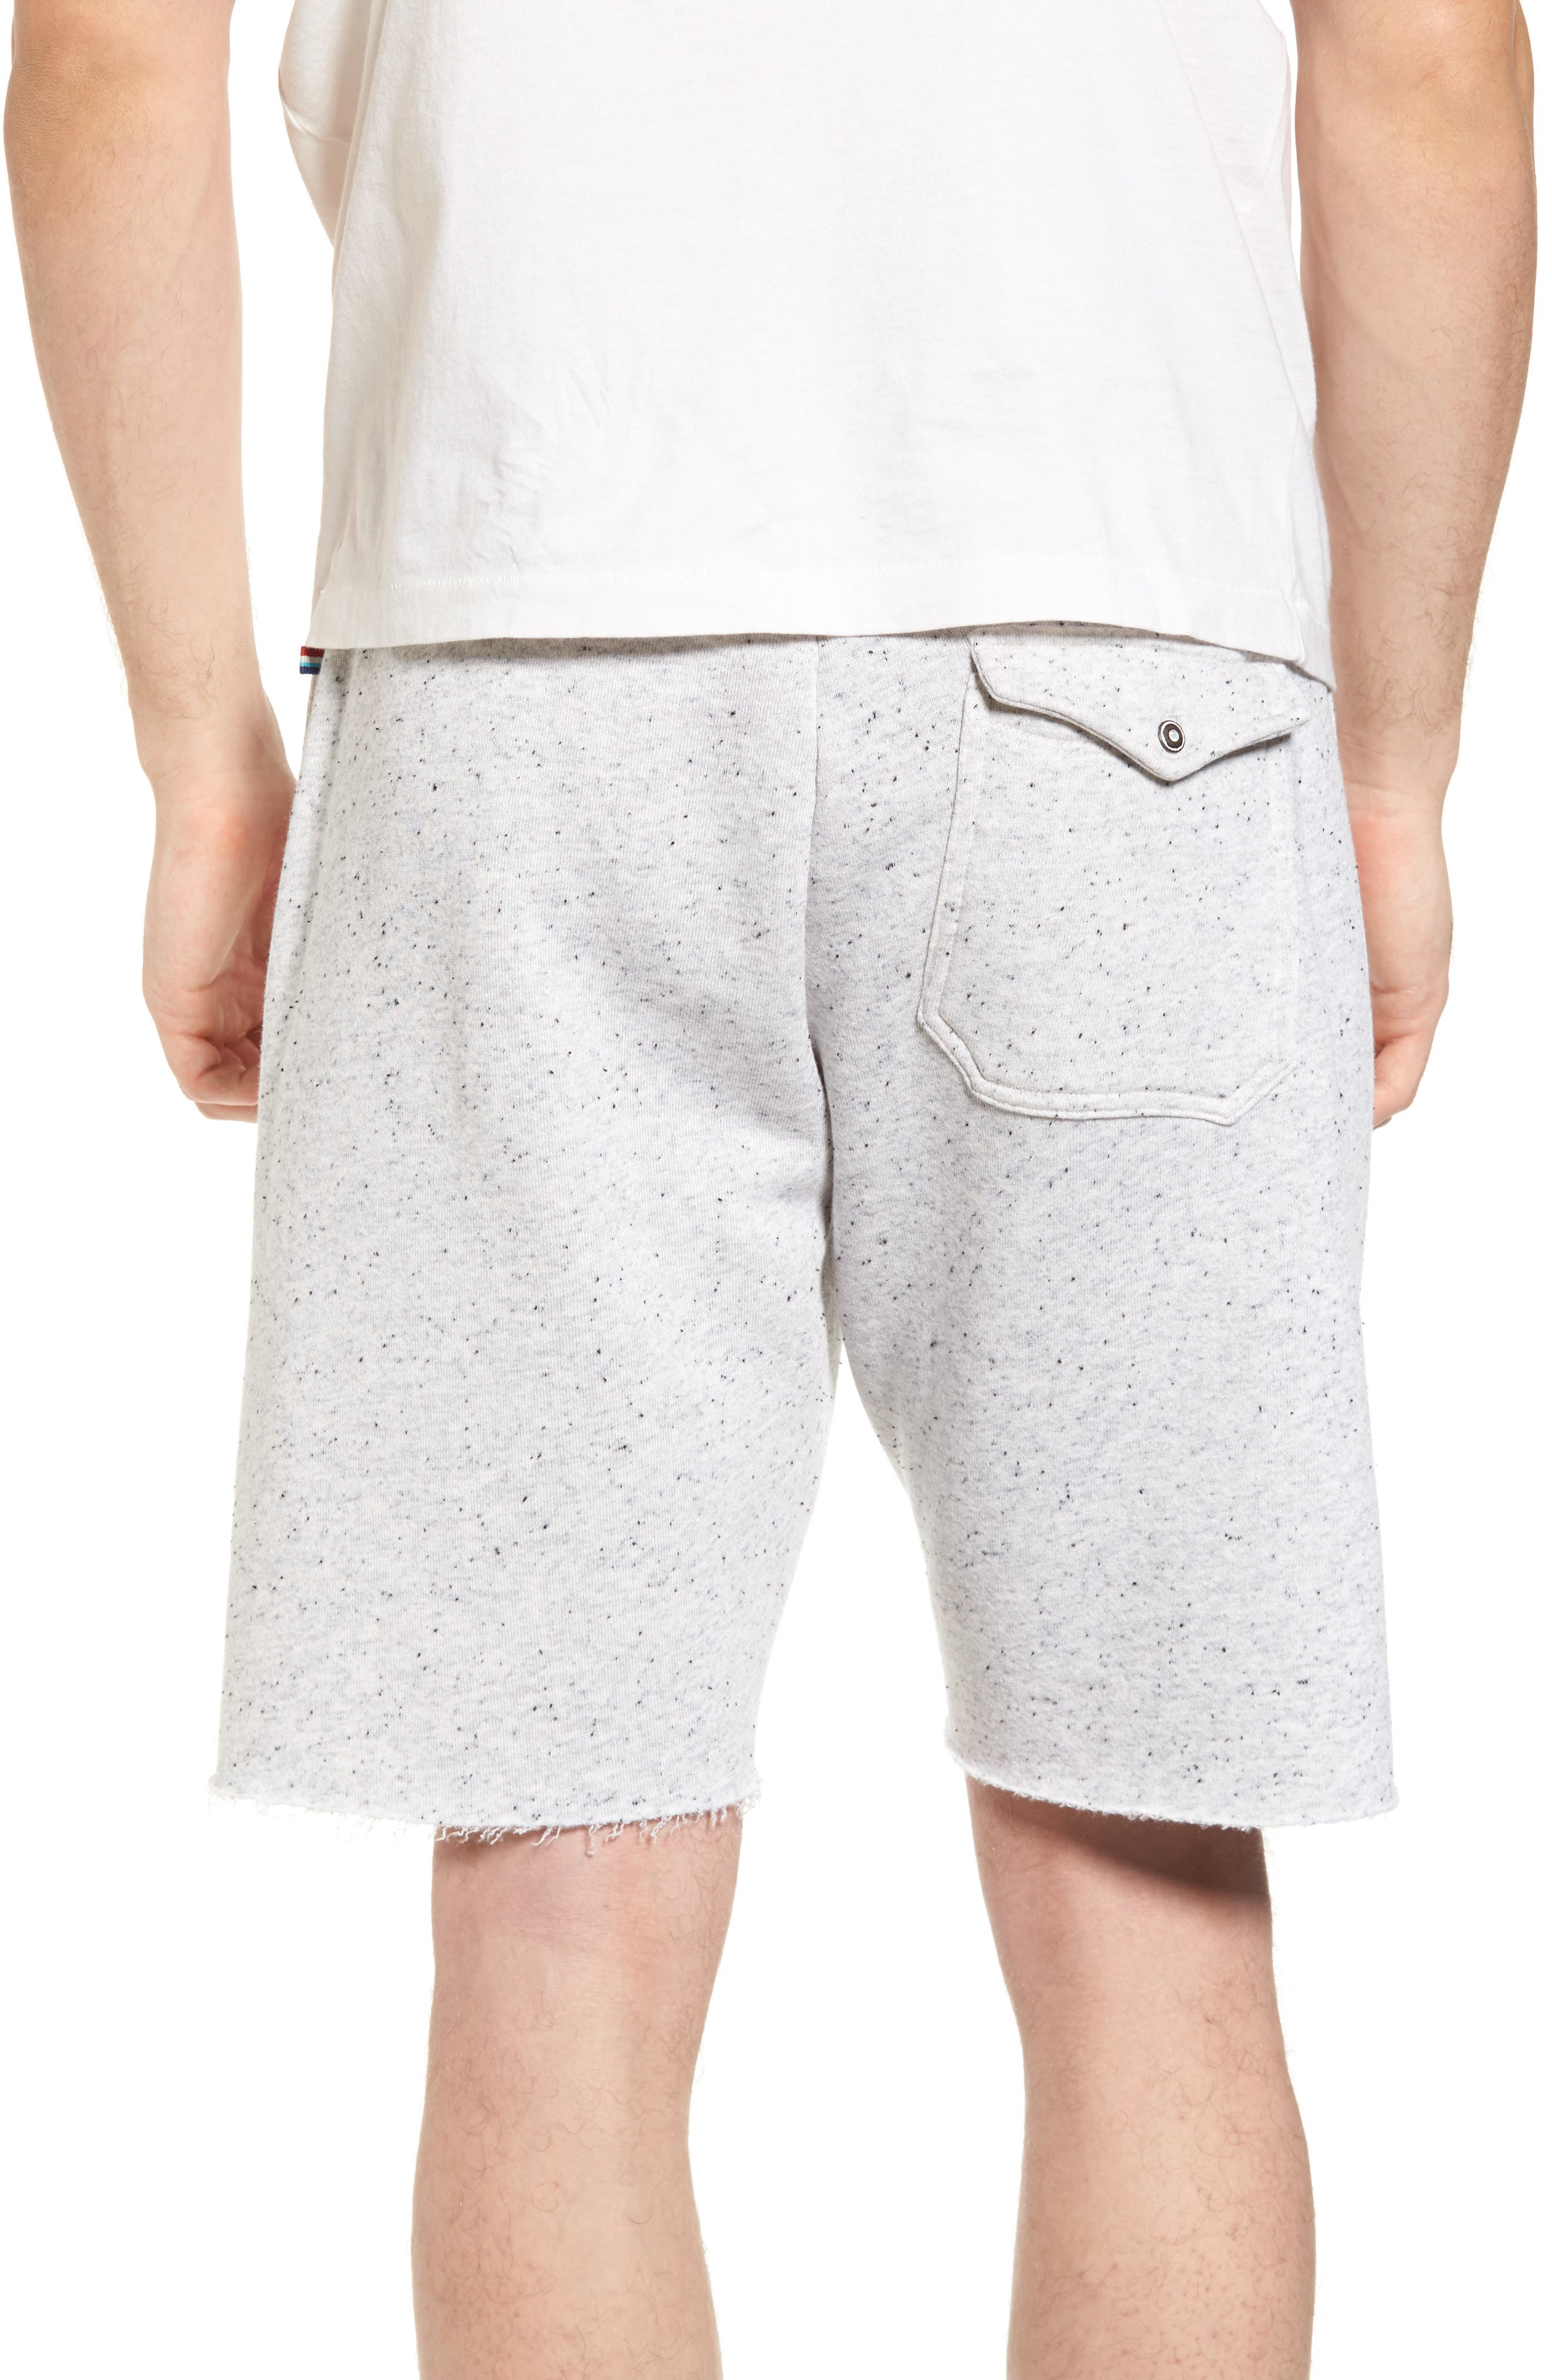 Peppered Shorts,                             Alternate thumbnail 2, color,                             Light Grey